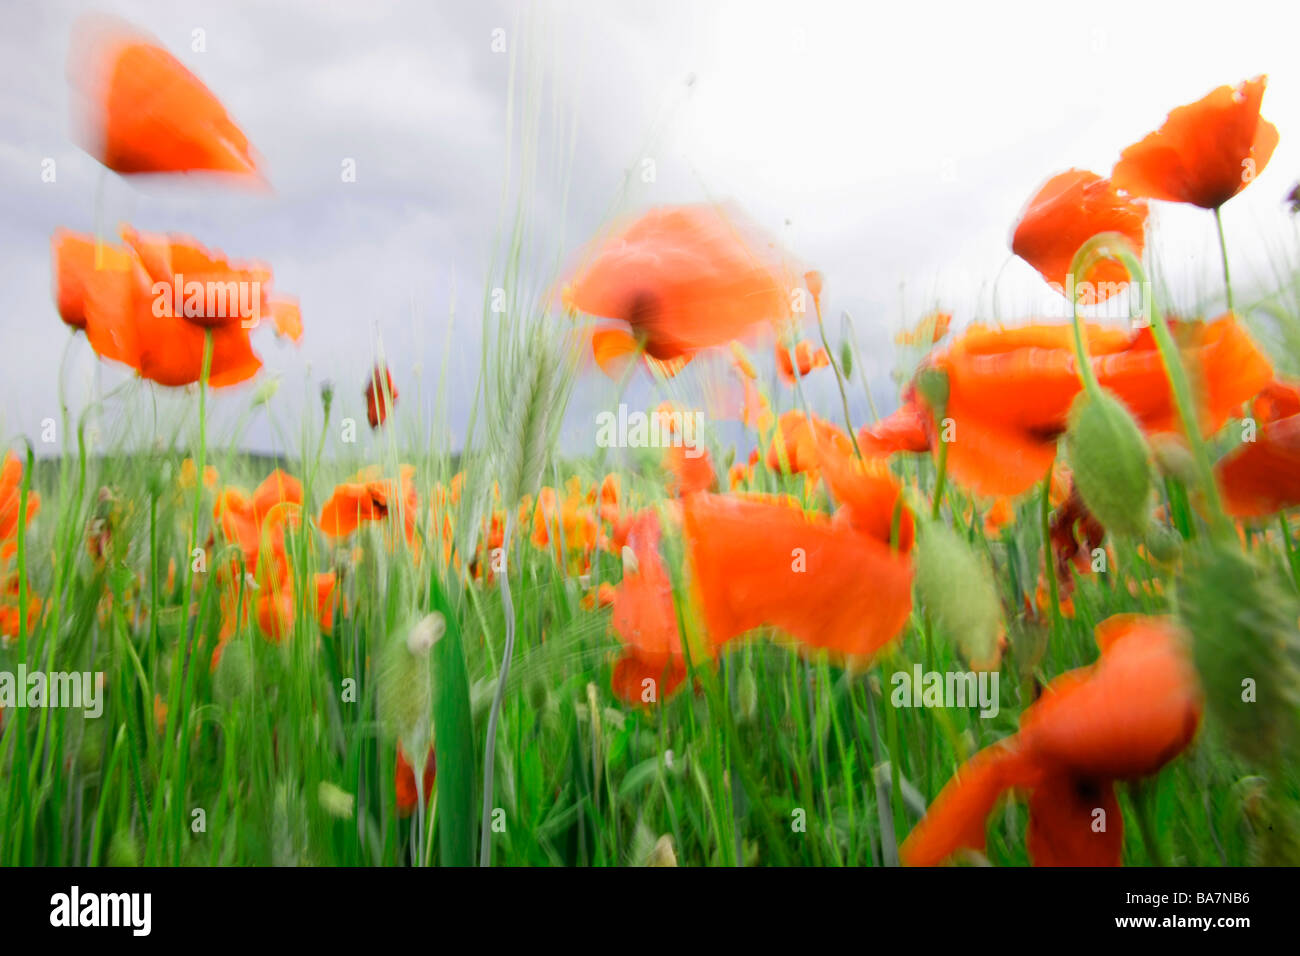 Red poppies in a wheat field, near Fayence, Cote d'Azur, Provence, France - Stock Image